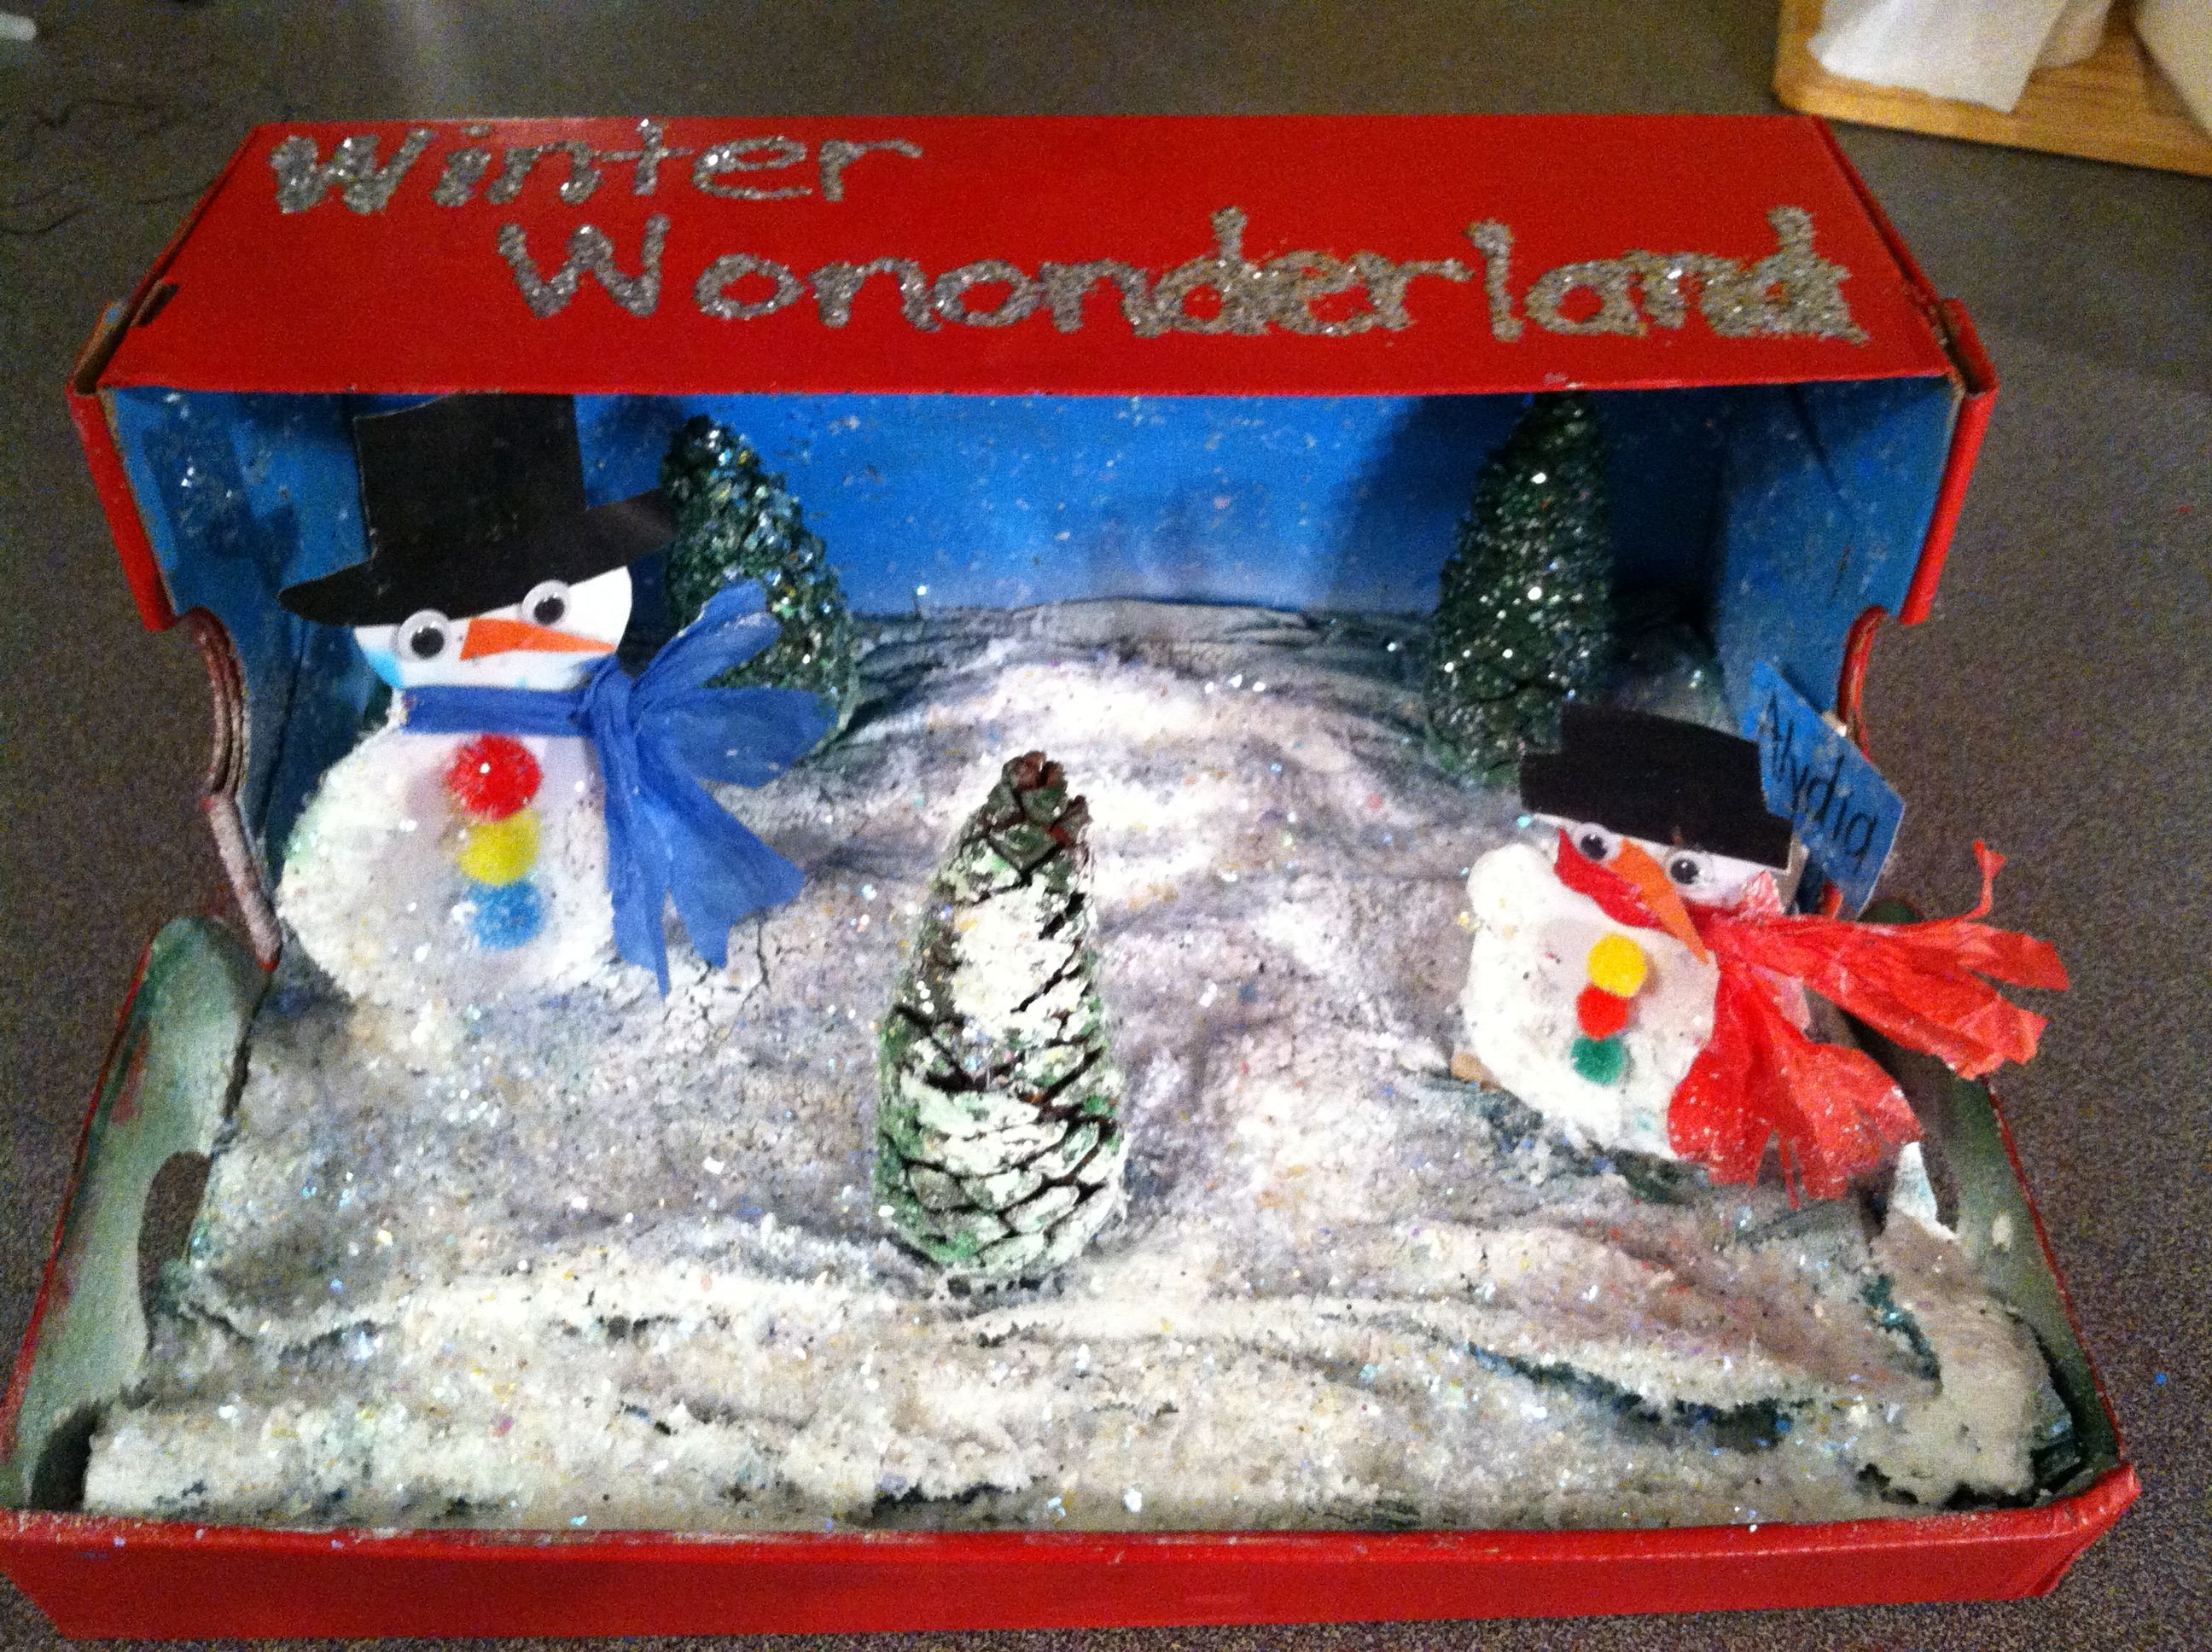 30 Shoe Box Craft Ideas: Shoe Box Craft ~winter Wonderland Created By My 6 Year Old